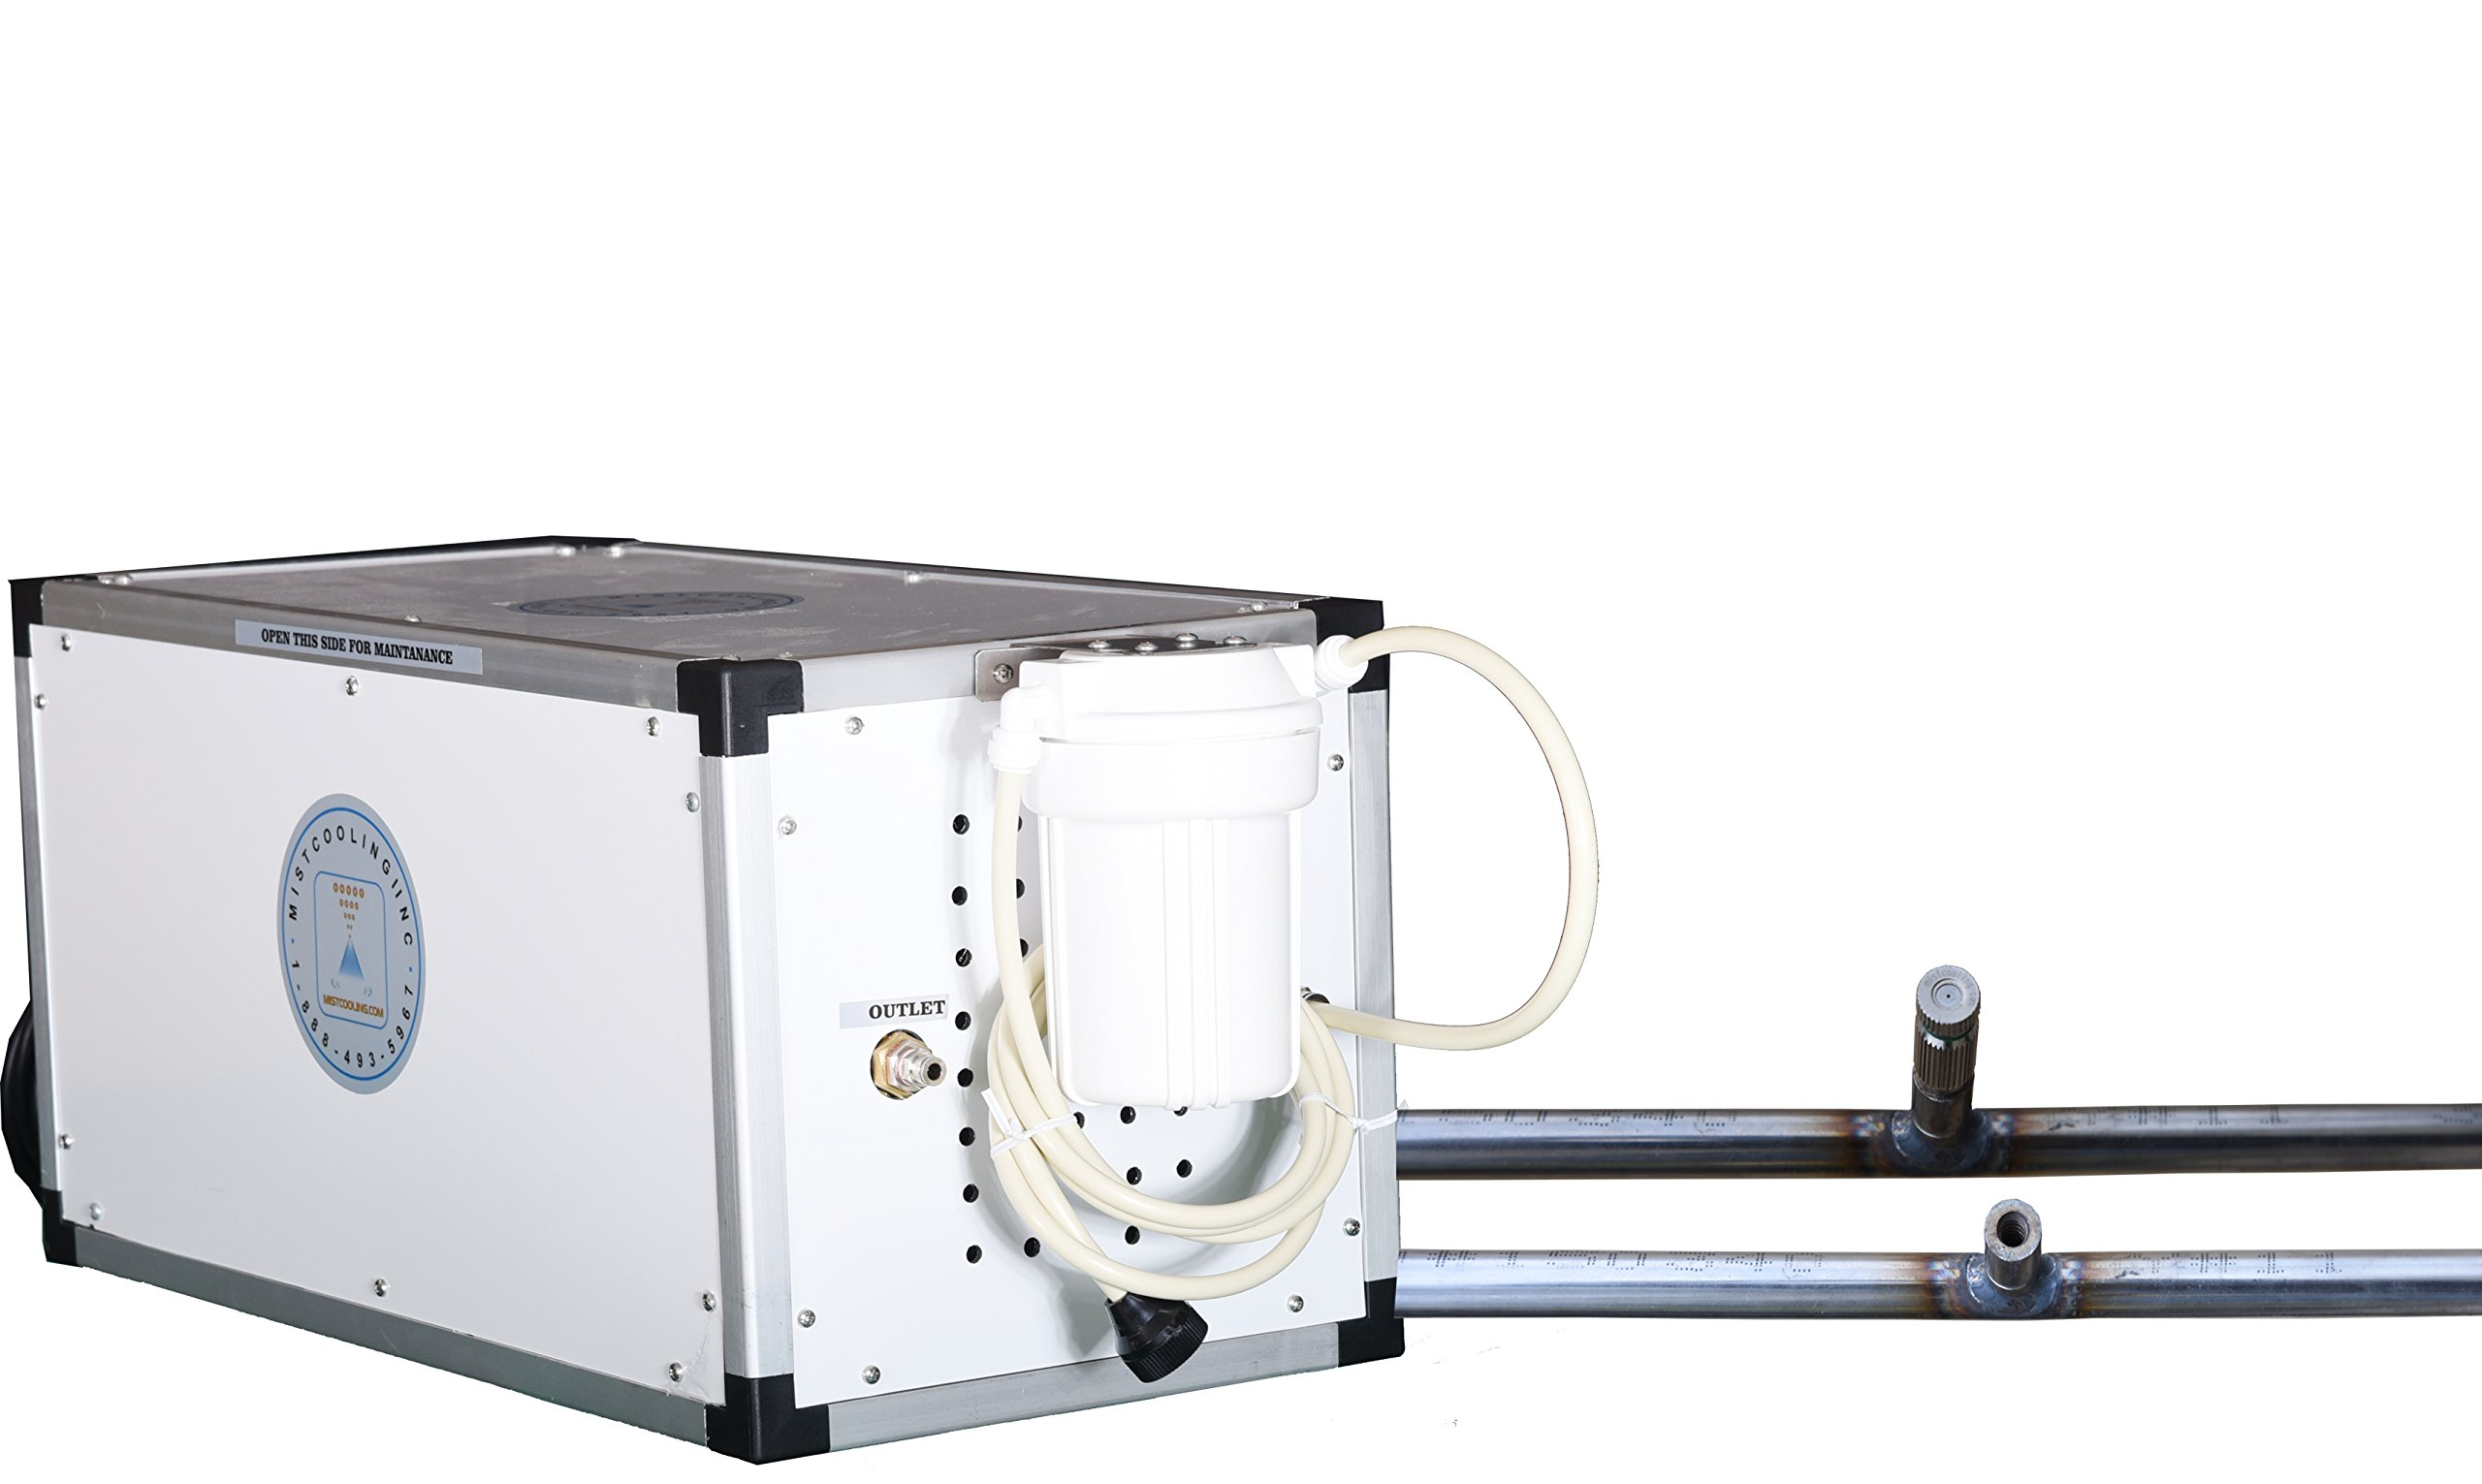 Industrial Misting System - With 1500 PSI High Pressure Pump - 3/8 Inch Stainless Steel Misting Line - For Industrial Cooling, Data Center Cooling (40 Nozzles - 80 Ft 3/8 Stainless Steel Mist Line)